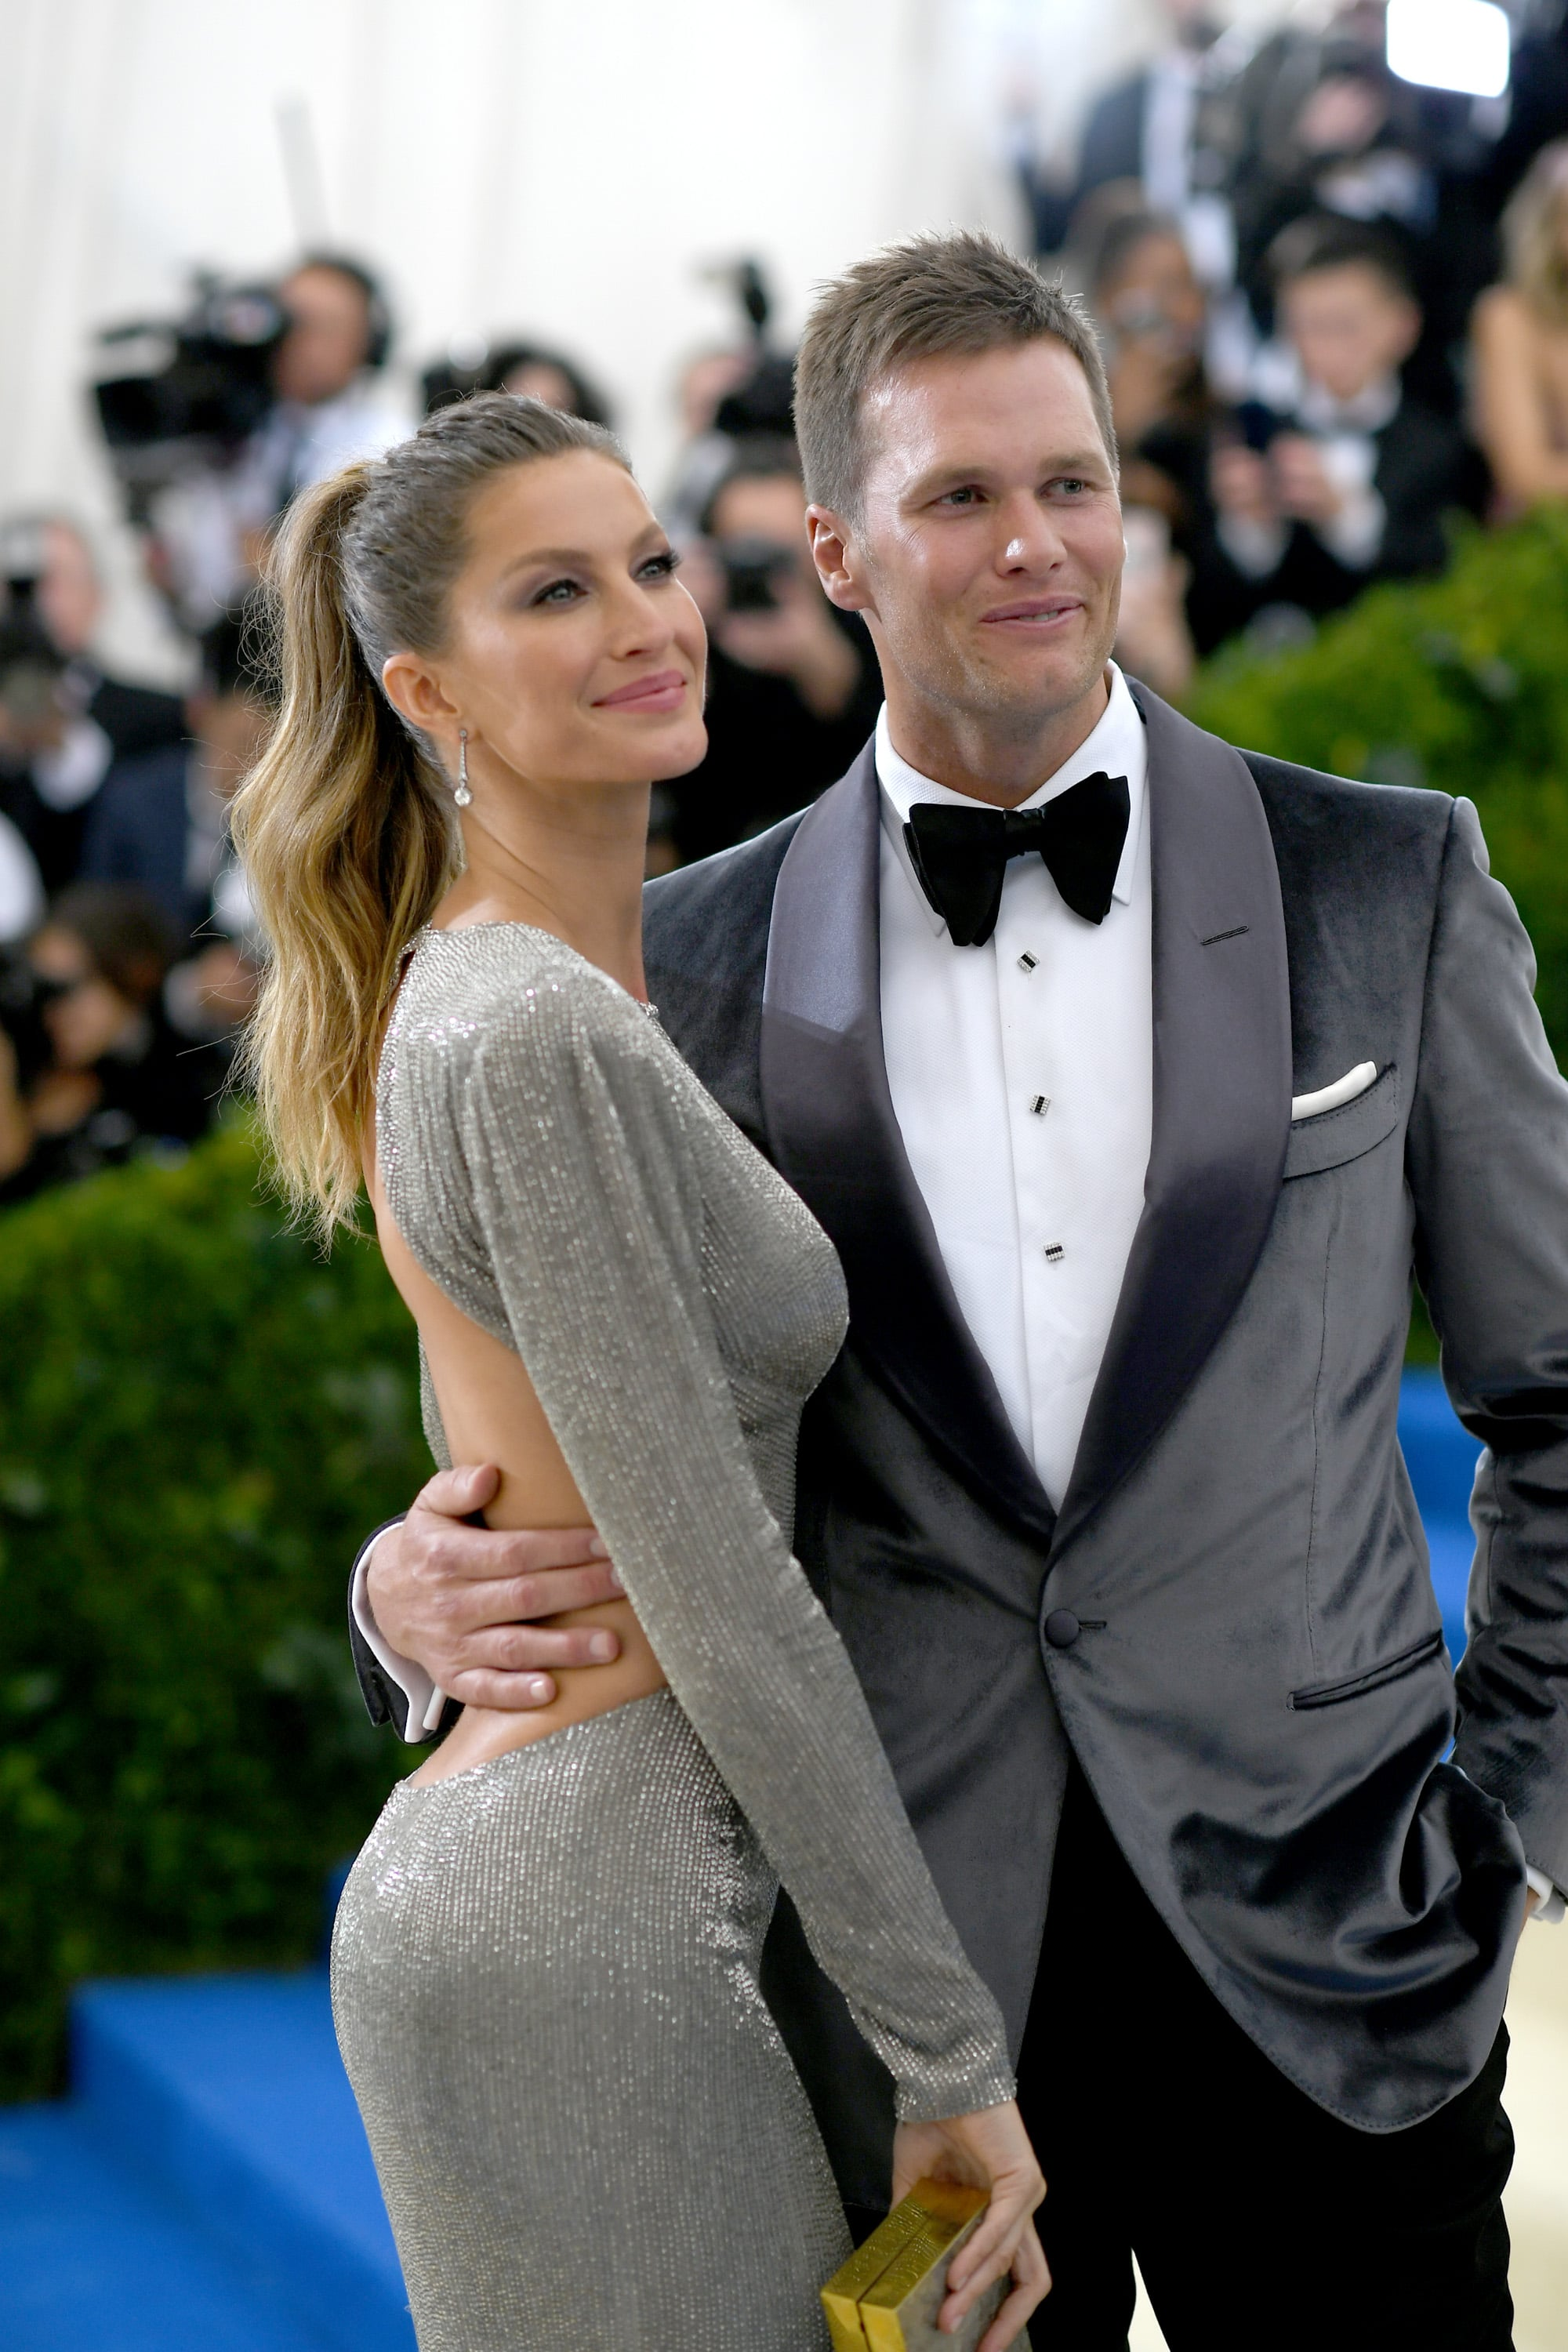 Tom Brady Gisele Bundchen Diet Experiment | POPSUGAR Fitness